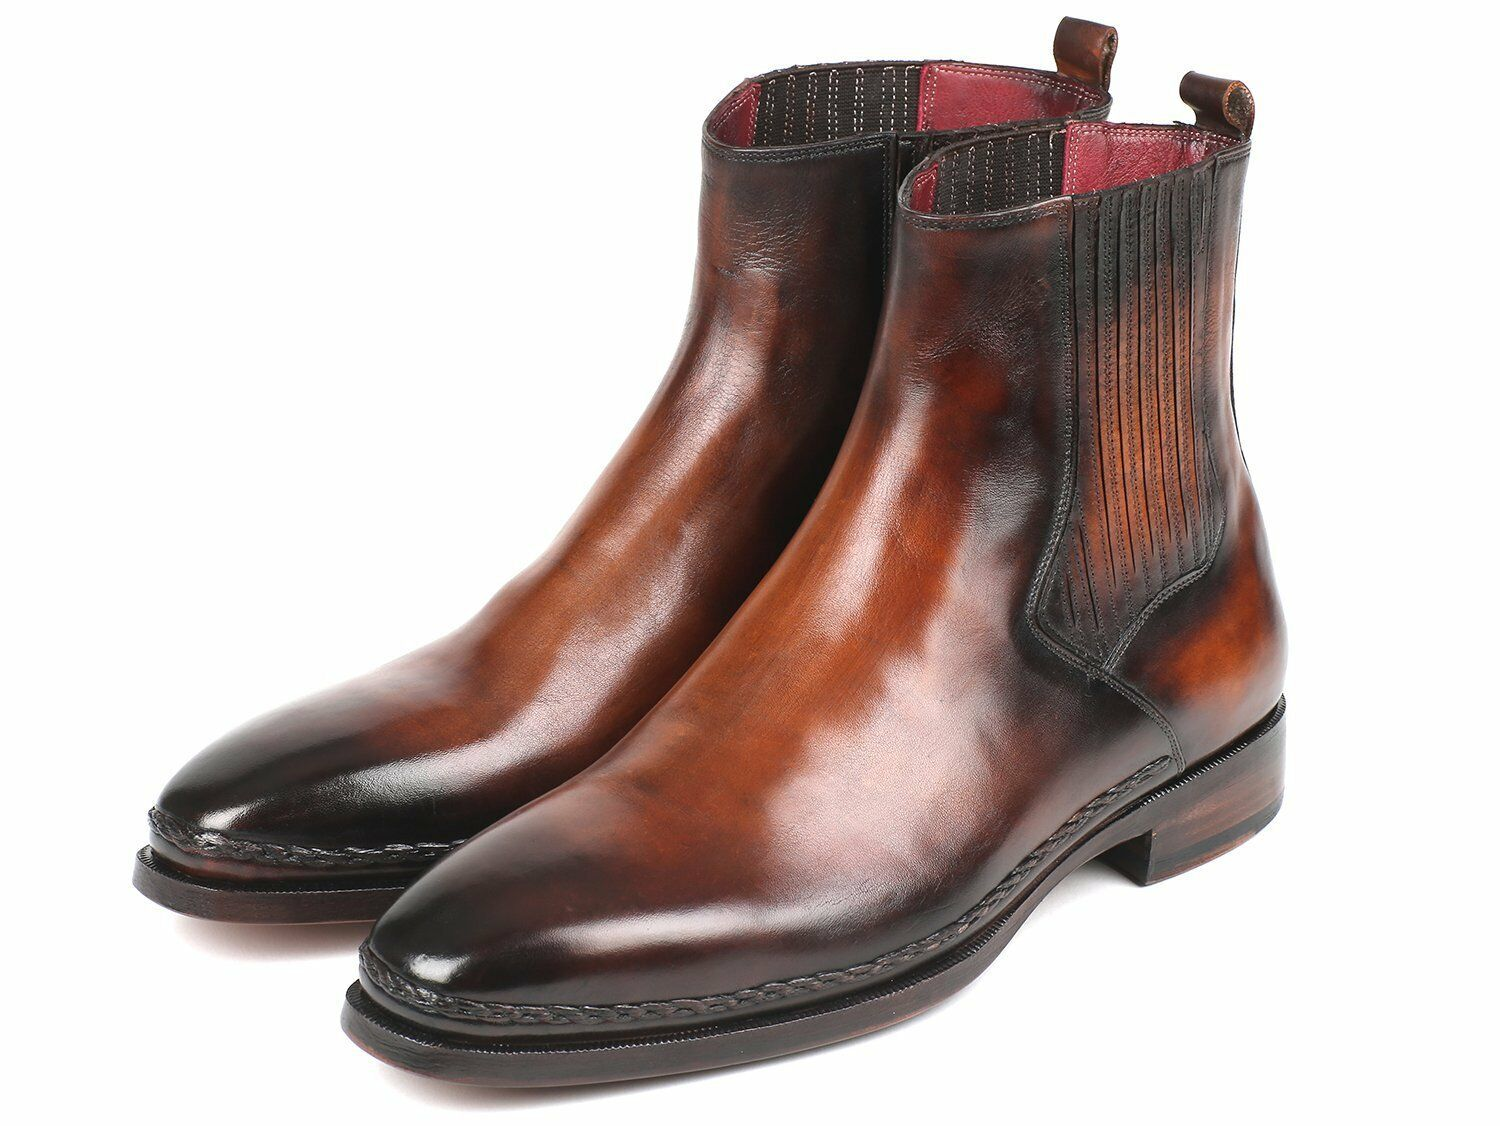 Stiefel Paul Parkman Chelsea braun Burnished Leather Hand Made Made Made Stiefel ee9257